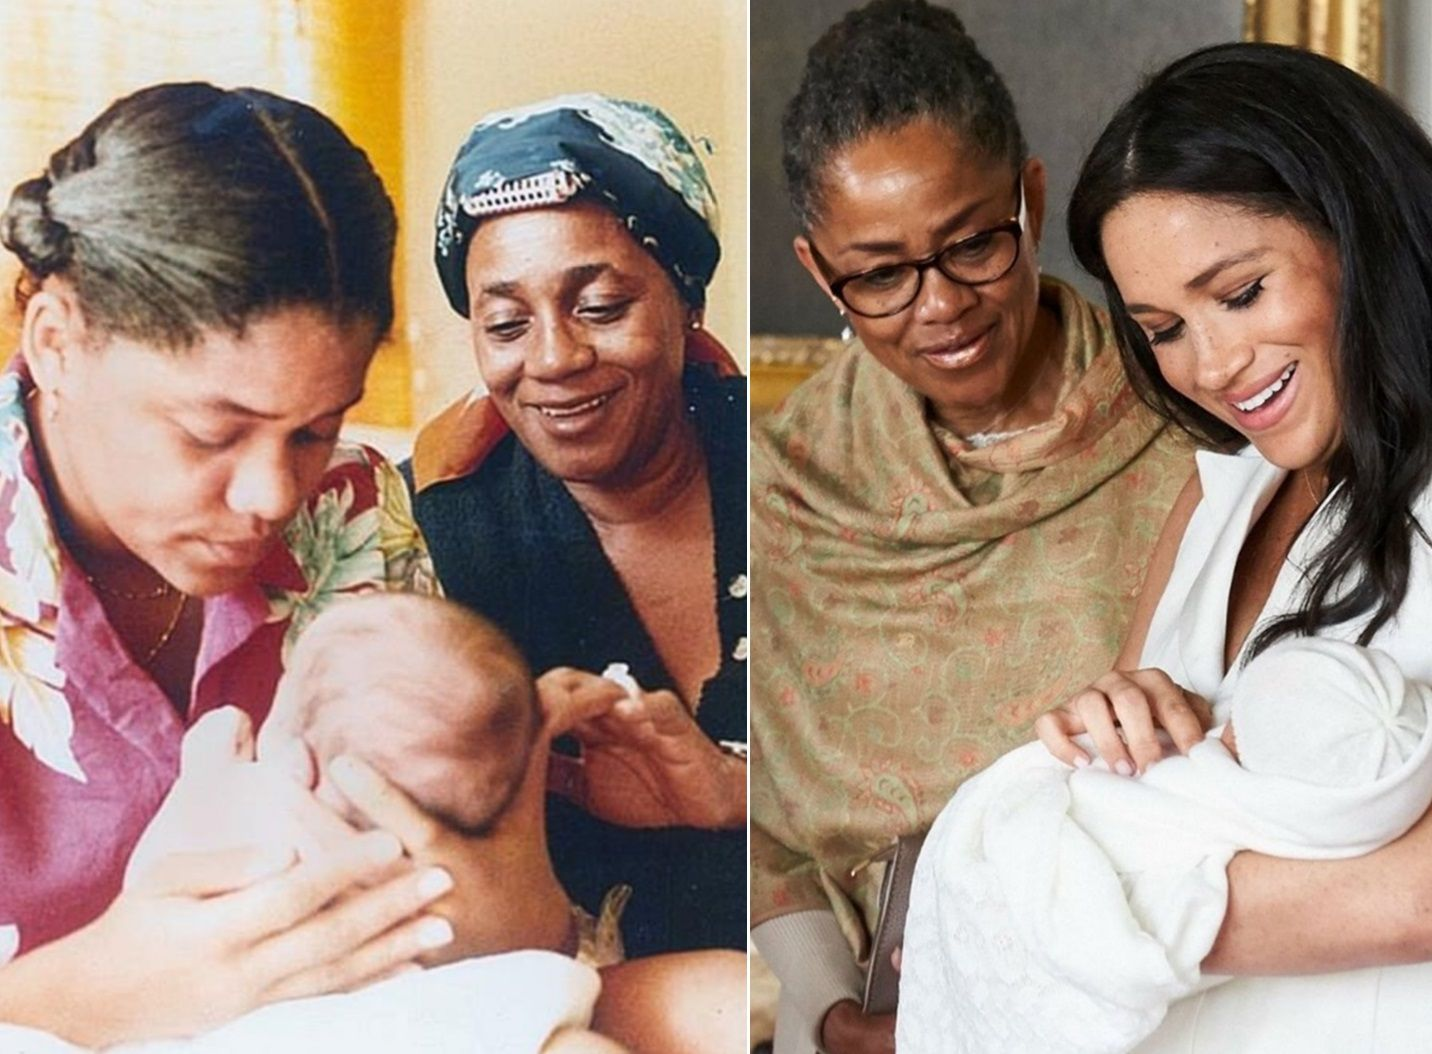 1981 Baby Meghan Markle Doria And Doria S Mom Jeanette 2019 Baby Archie Harrison Meghan Markle Prince Harry And Megan Harry And Meghan Princess Meghan